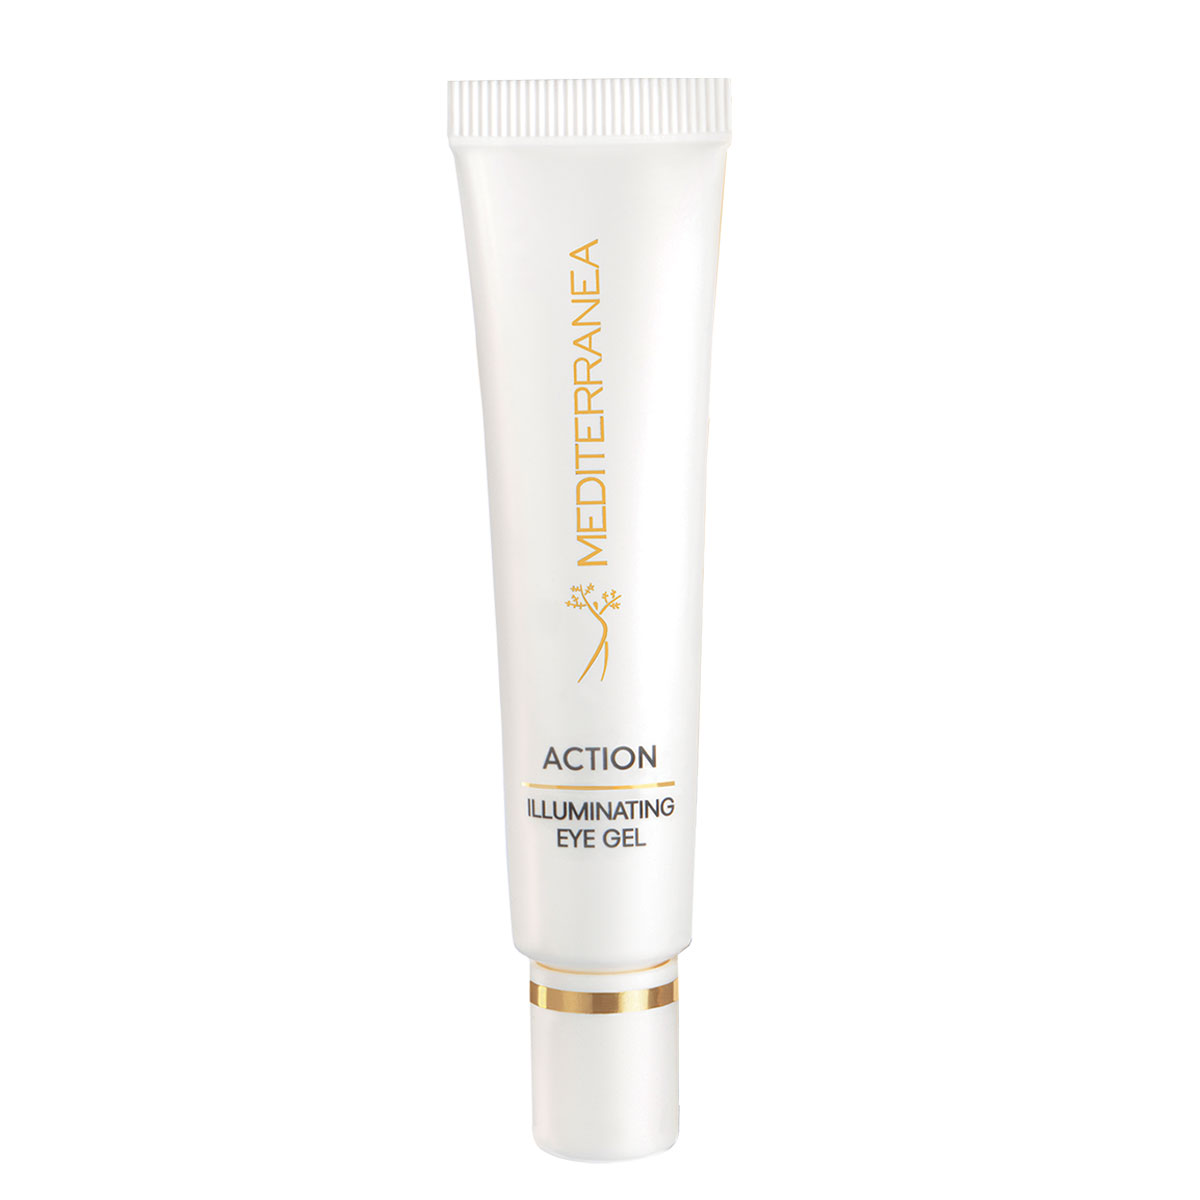 ACTION ILLUMINATING EYE GEL